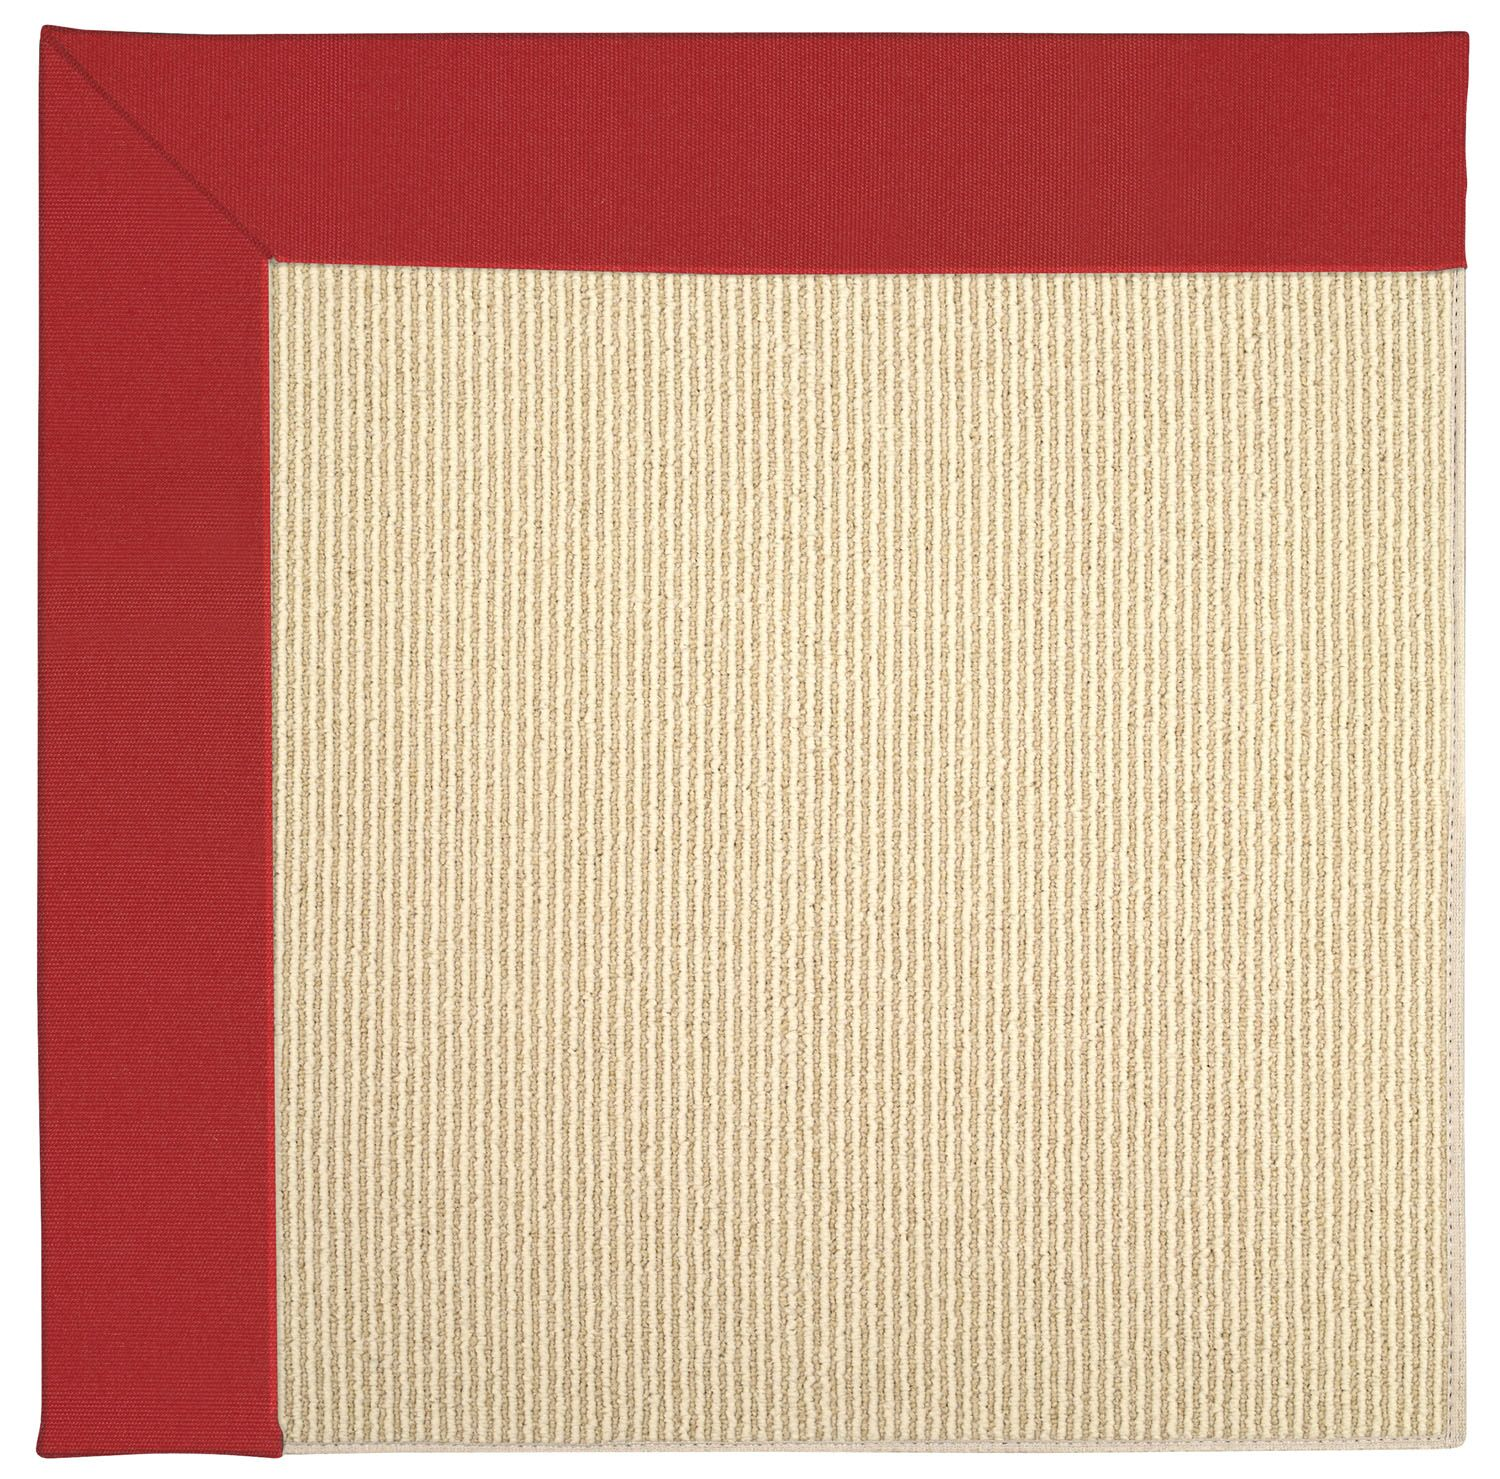 Lisle Machine Tufted Red/Beige Indoor/Outdoor Area Rug Rug Size: Rectangle 8' x 10'